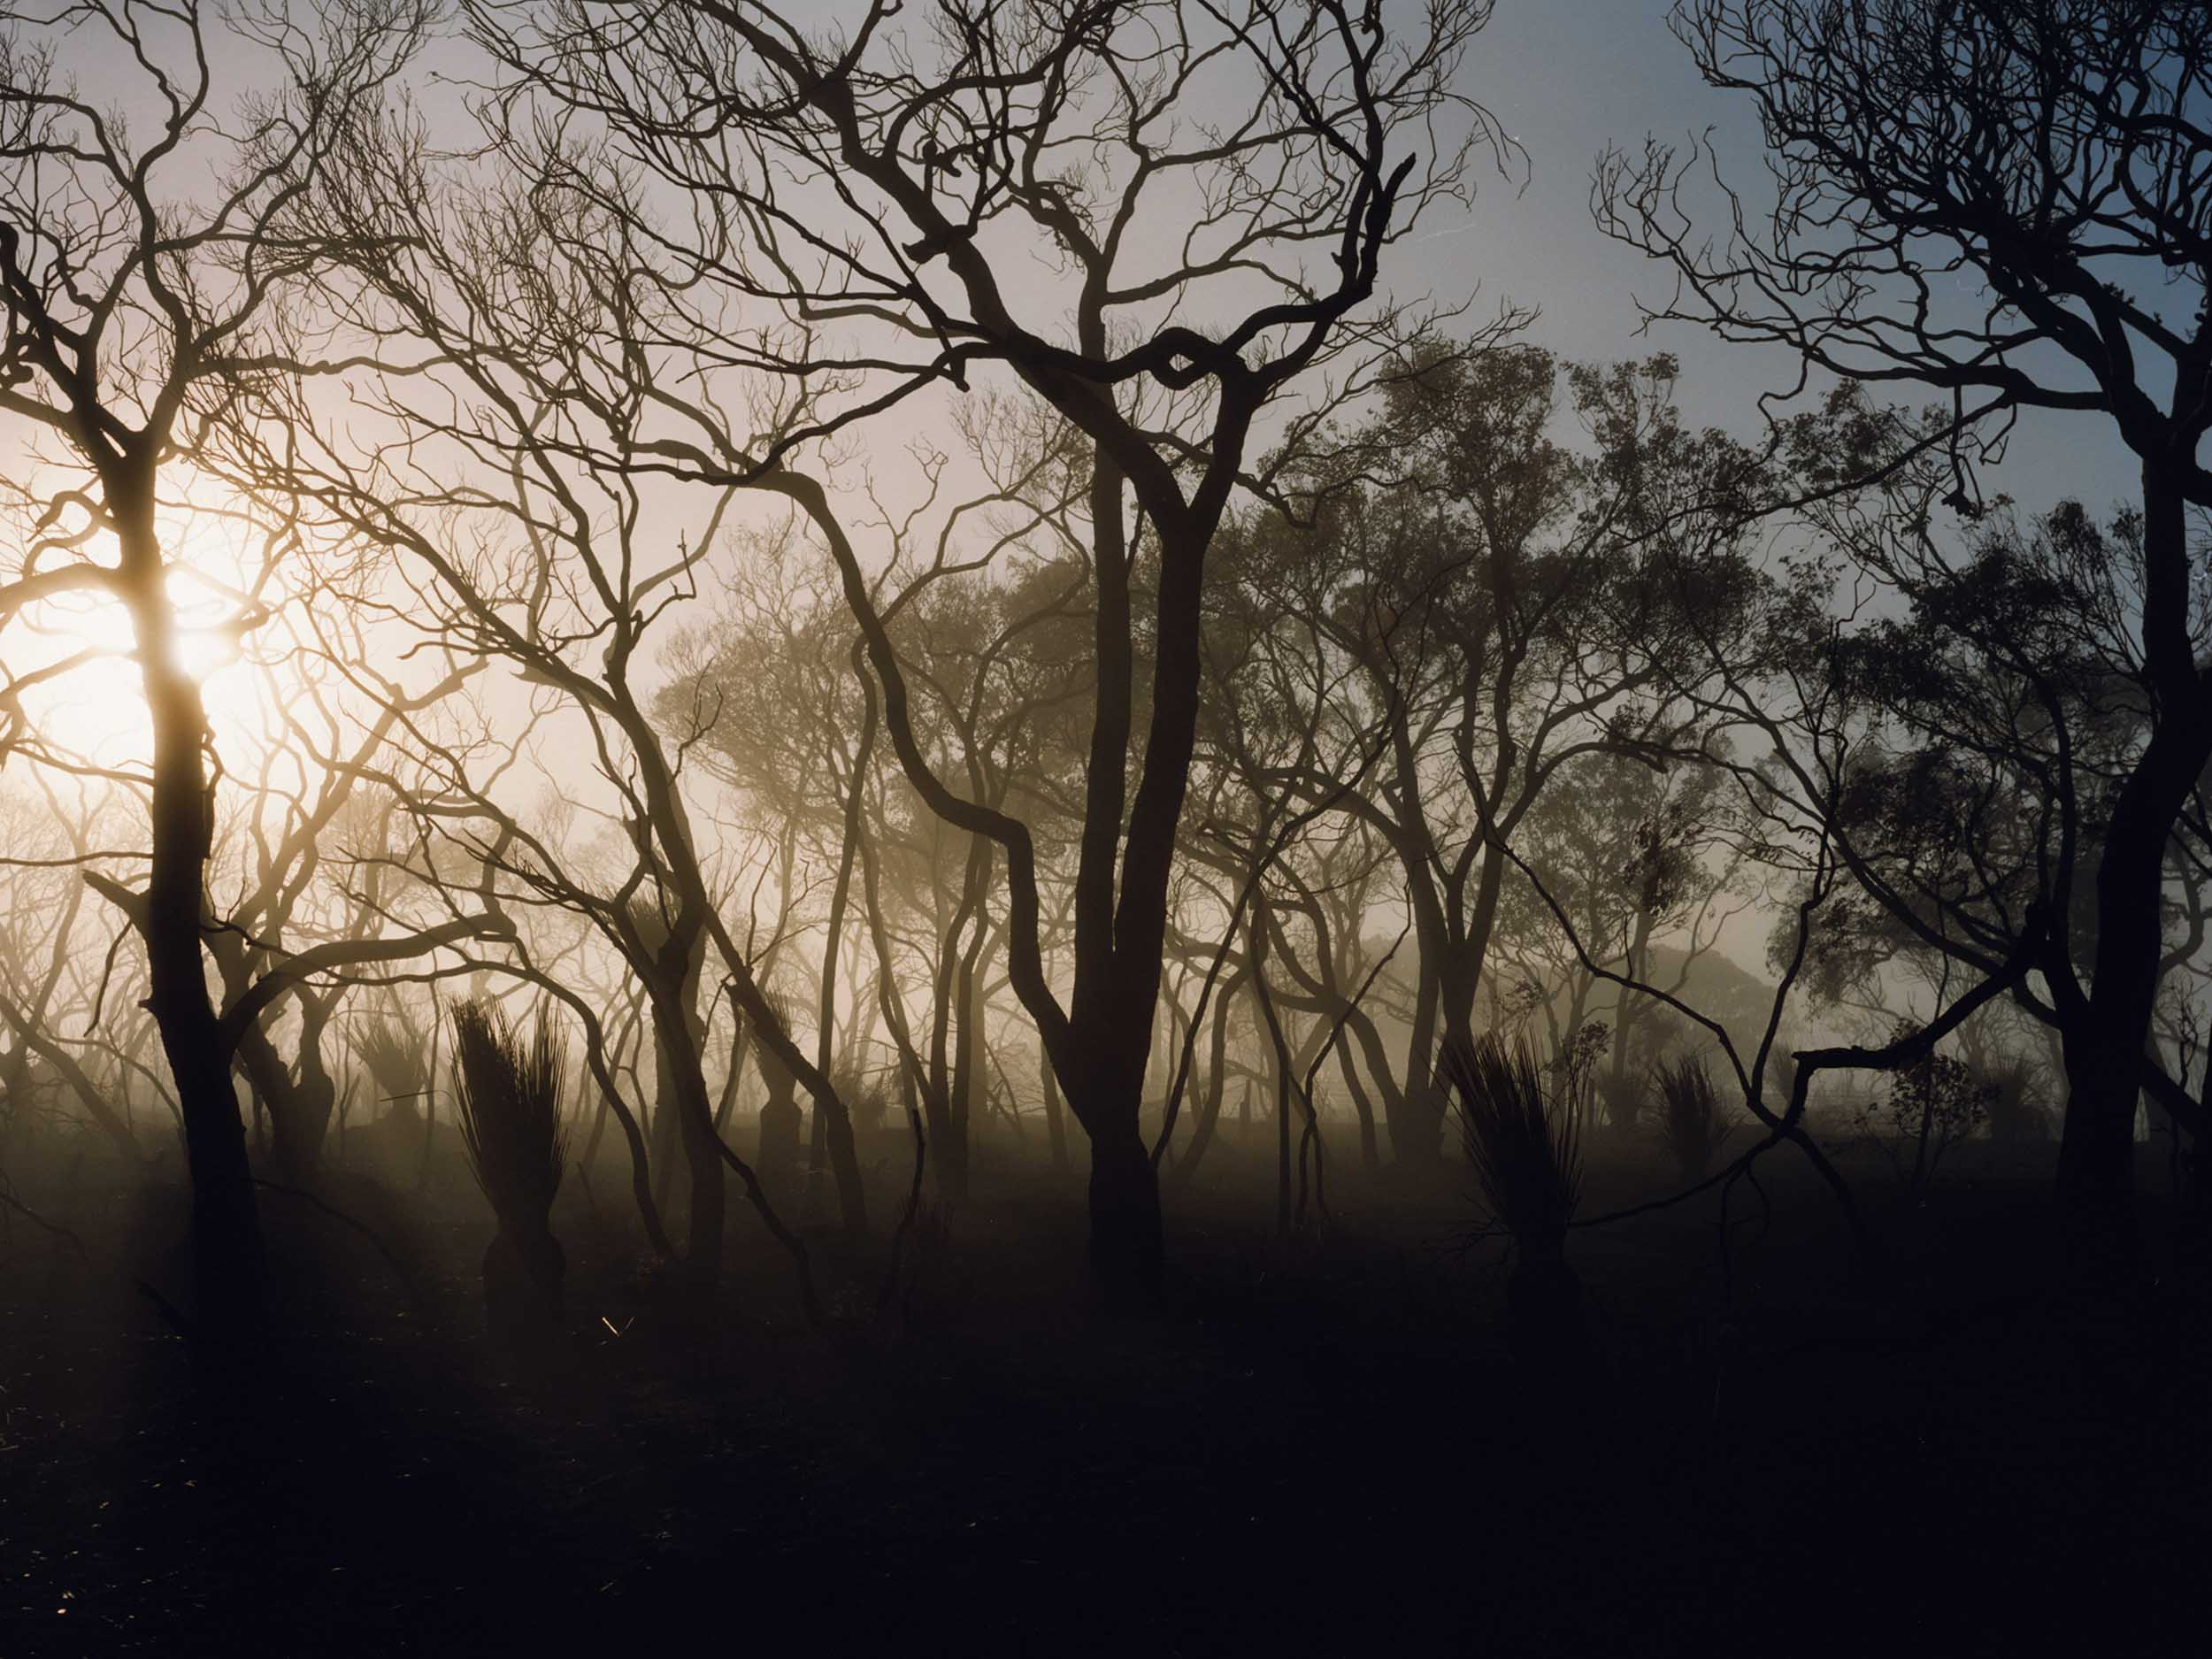 In the Australian outback, a vision of our uncertain future